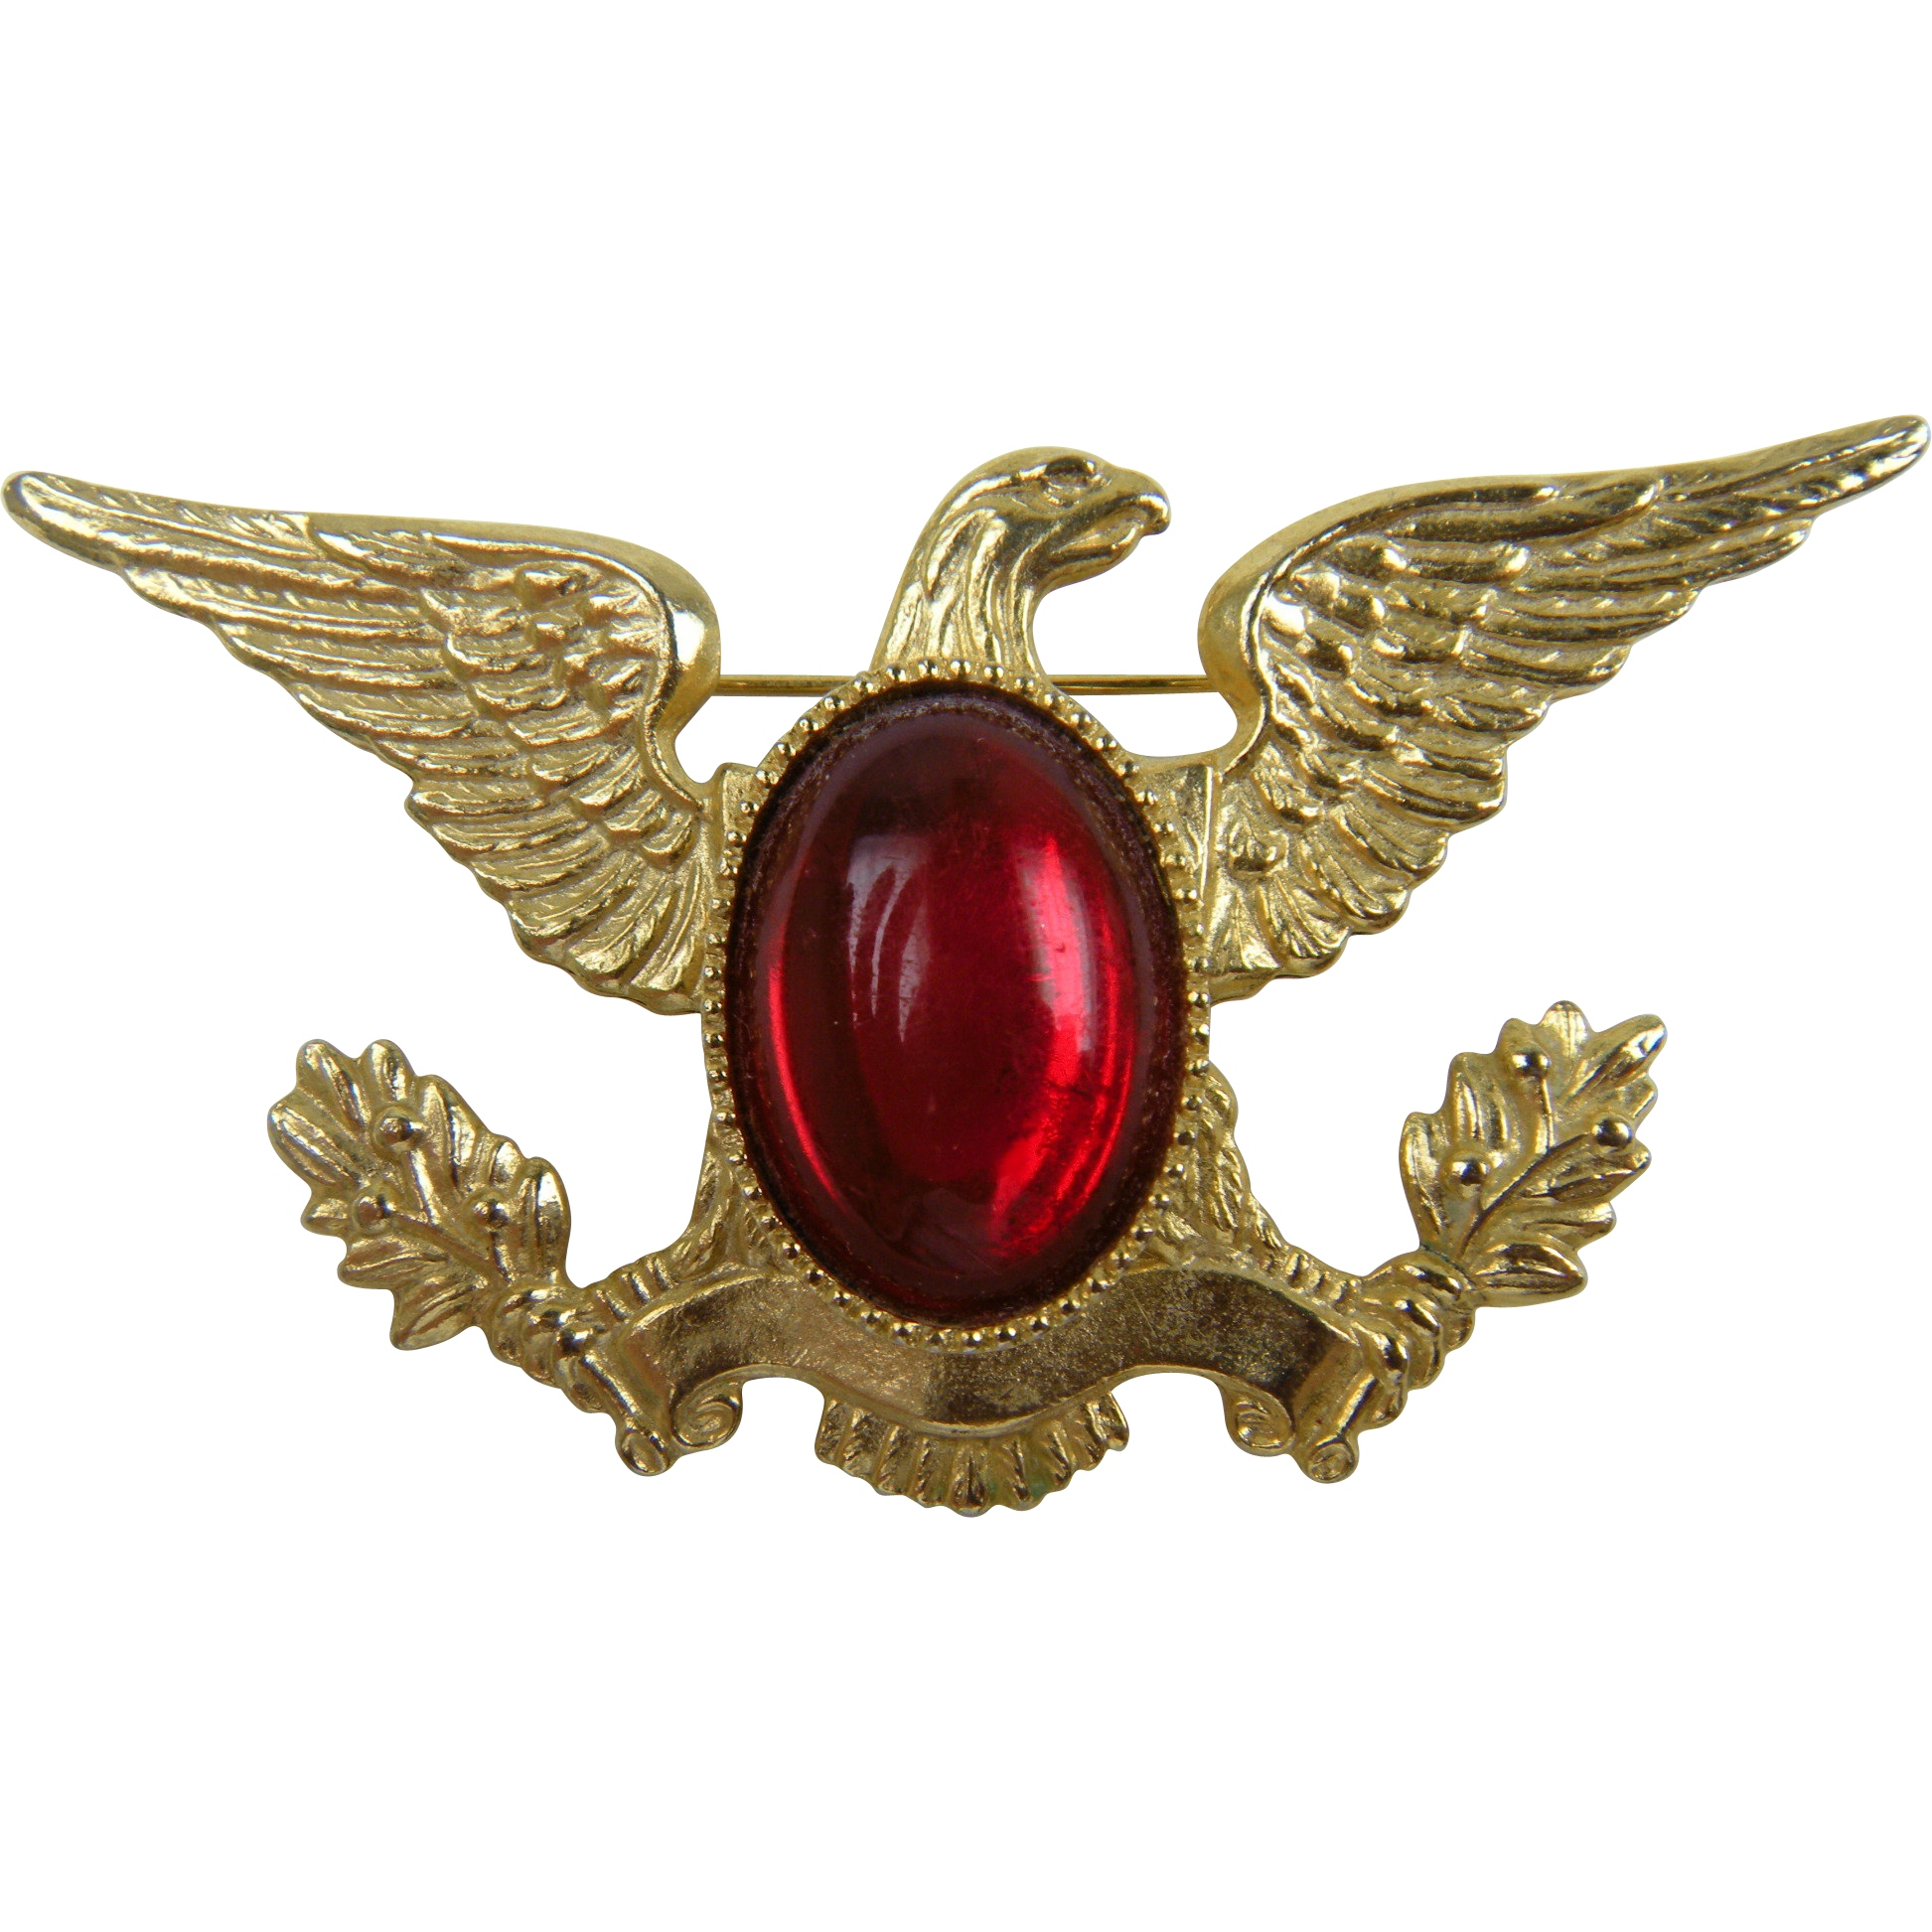 Patriotic Jelly Belly Eagle Brooch